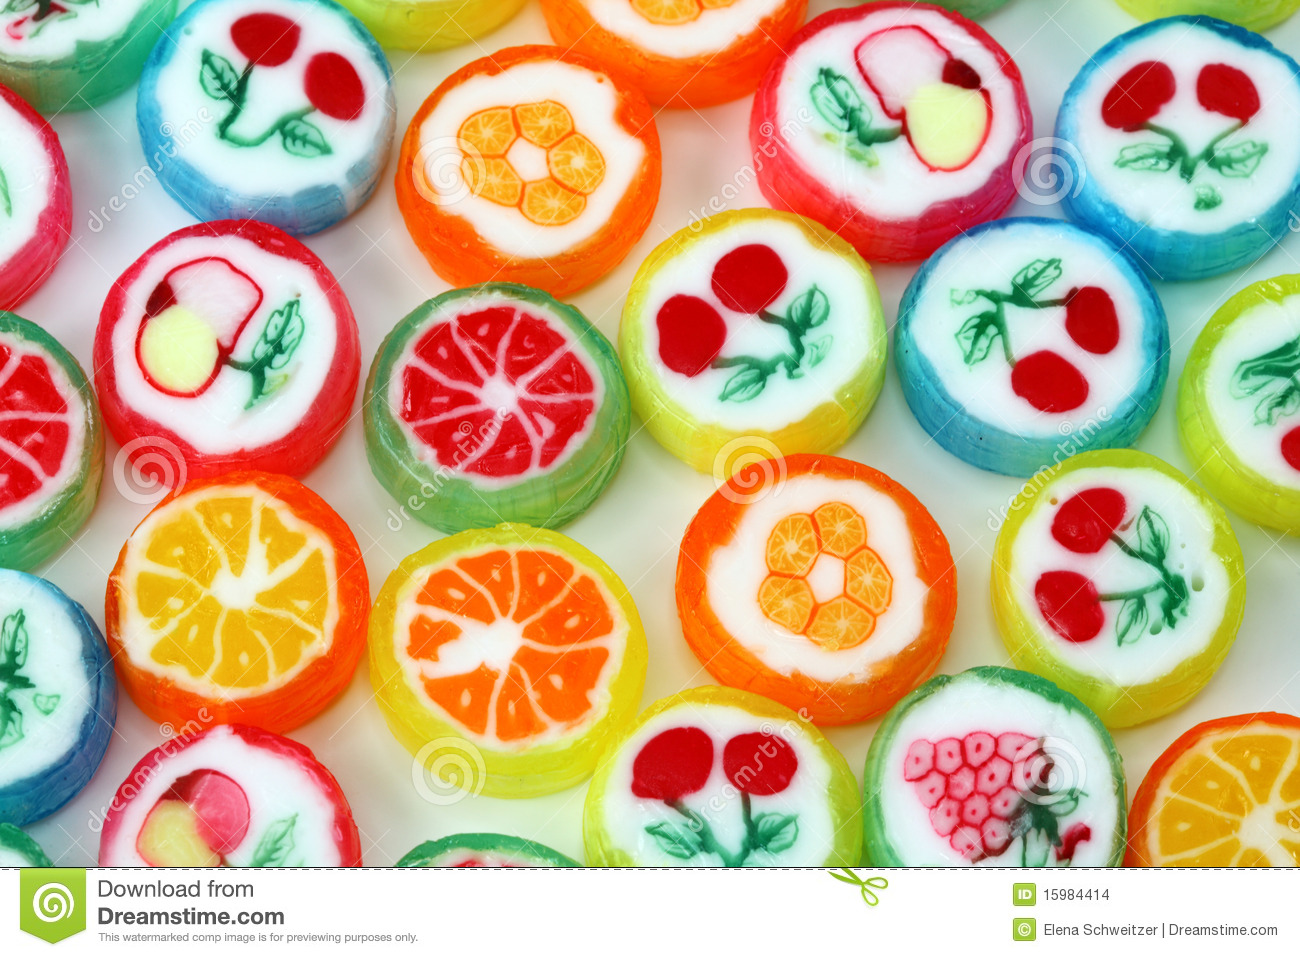 Favori Mixed Colorful Fruit Bonbon Stock Images - Image: 15984414 MM29